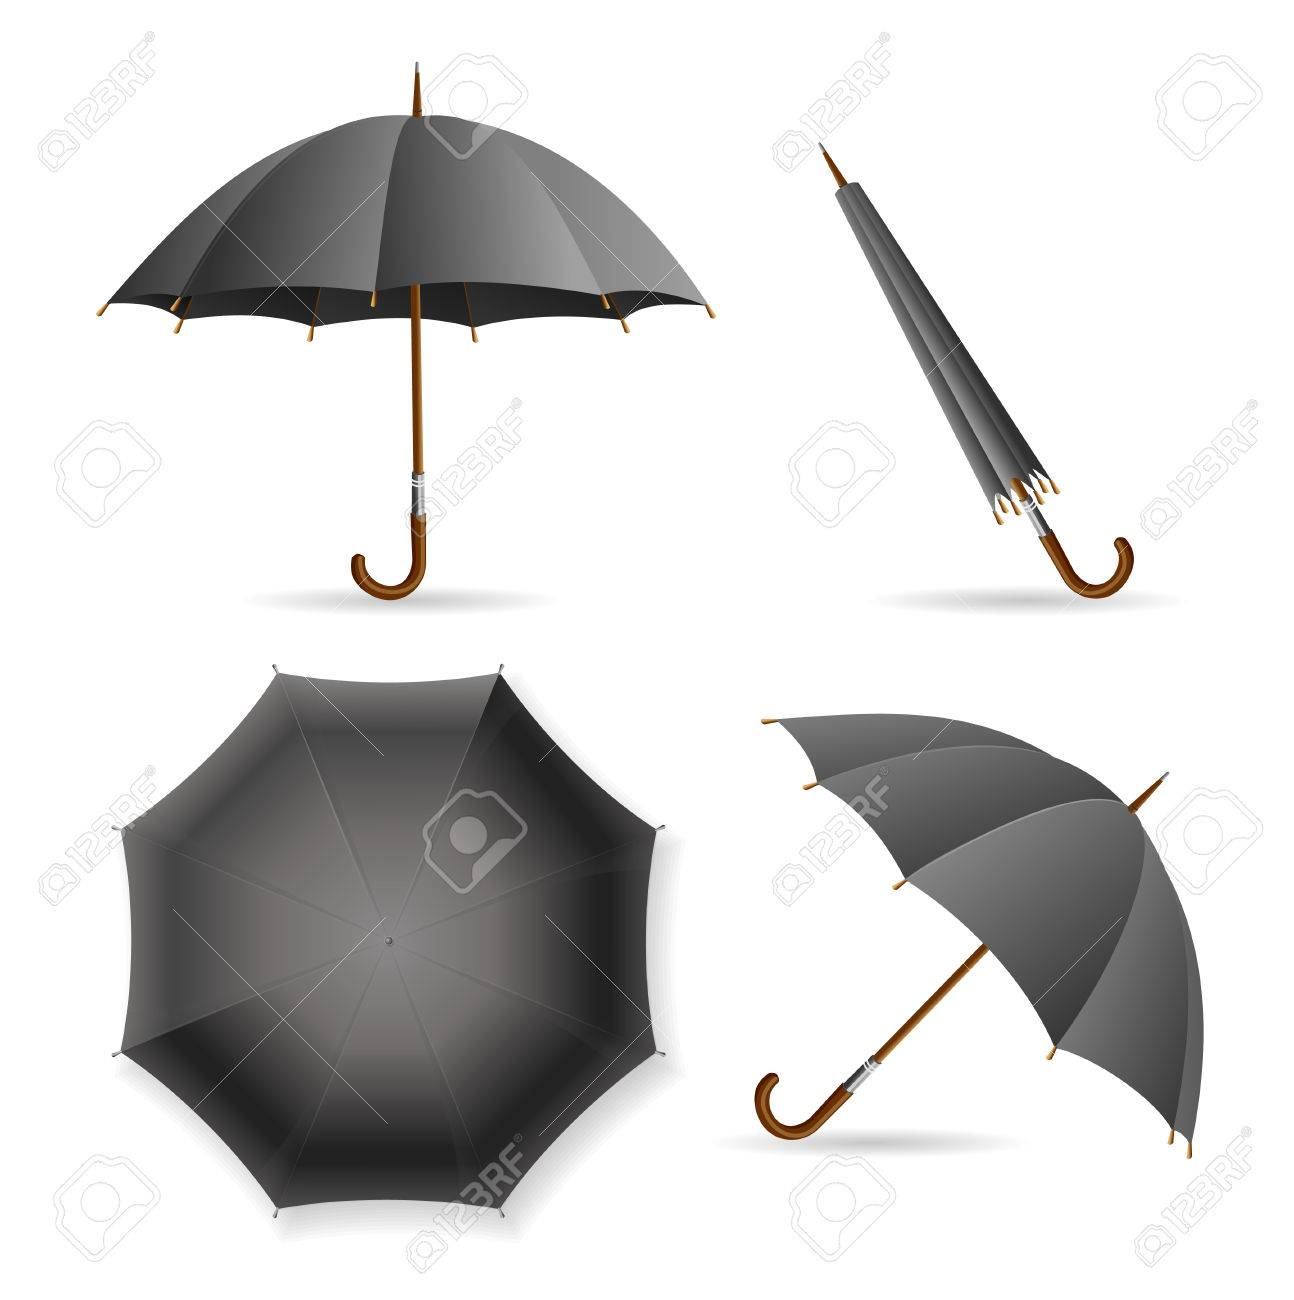 1a07dd114 Black Umbrella Template Set. Opened and Closed. Vector illustration Stock  Vector - 62205906